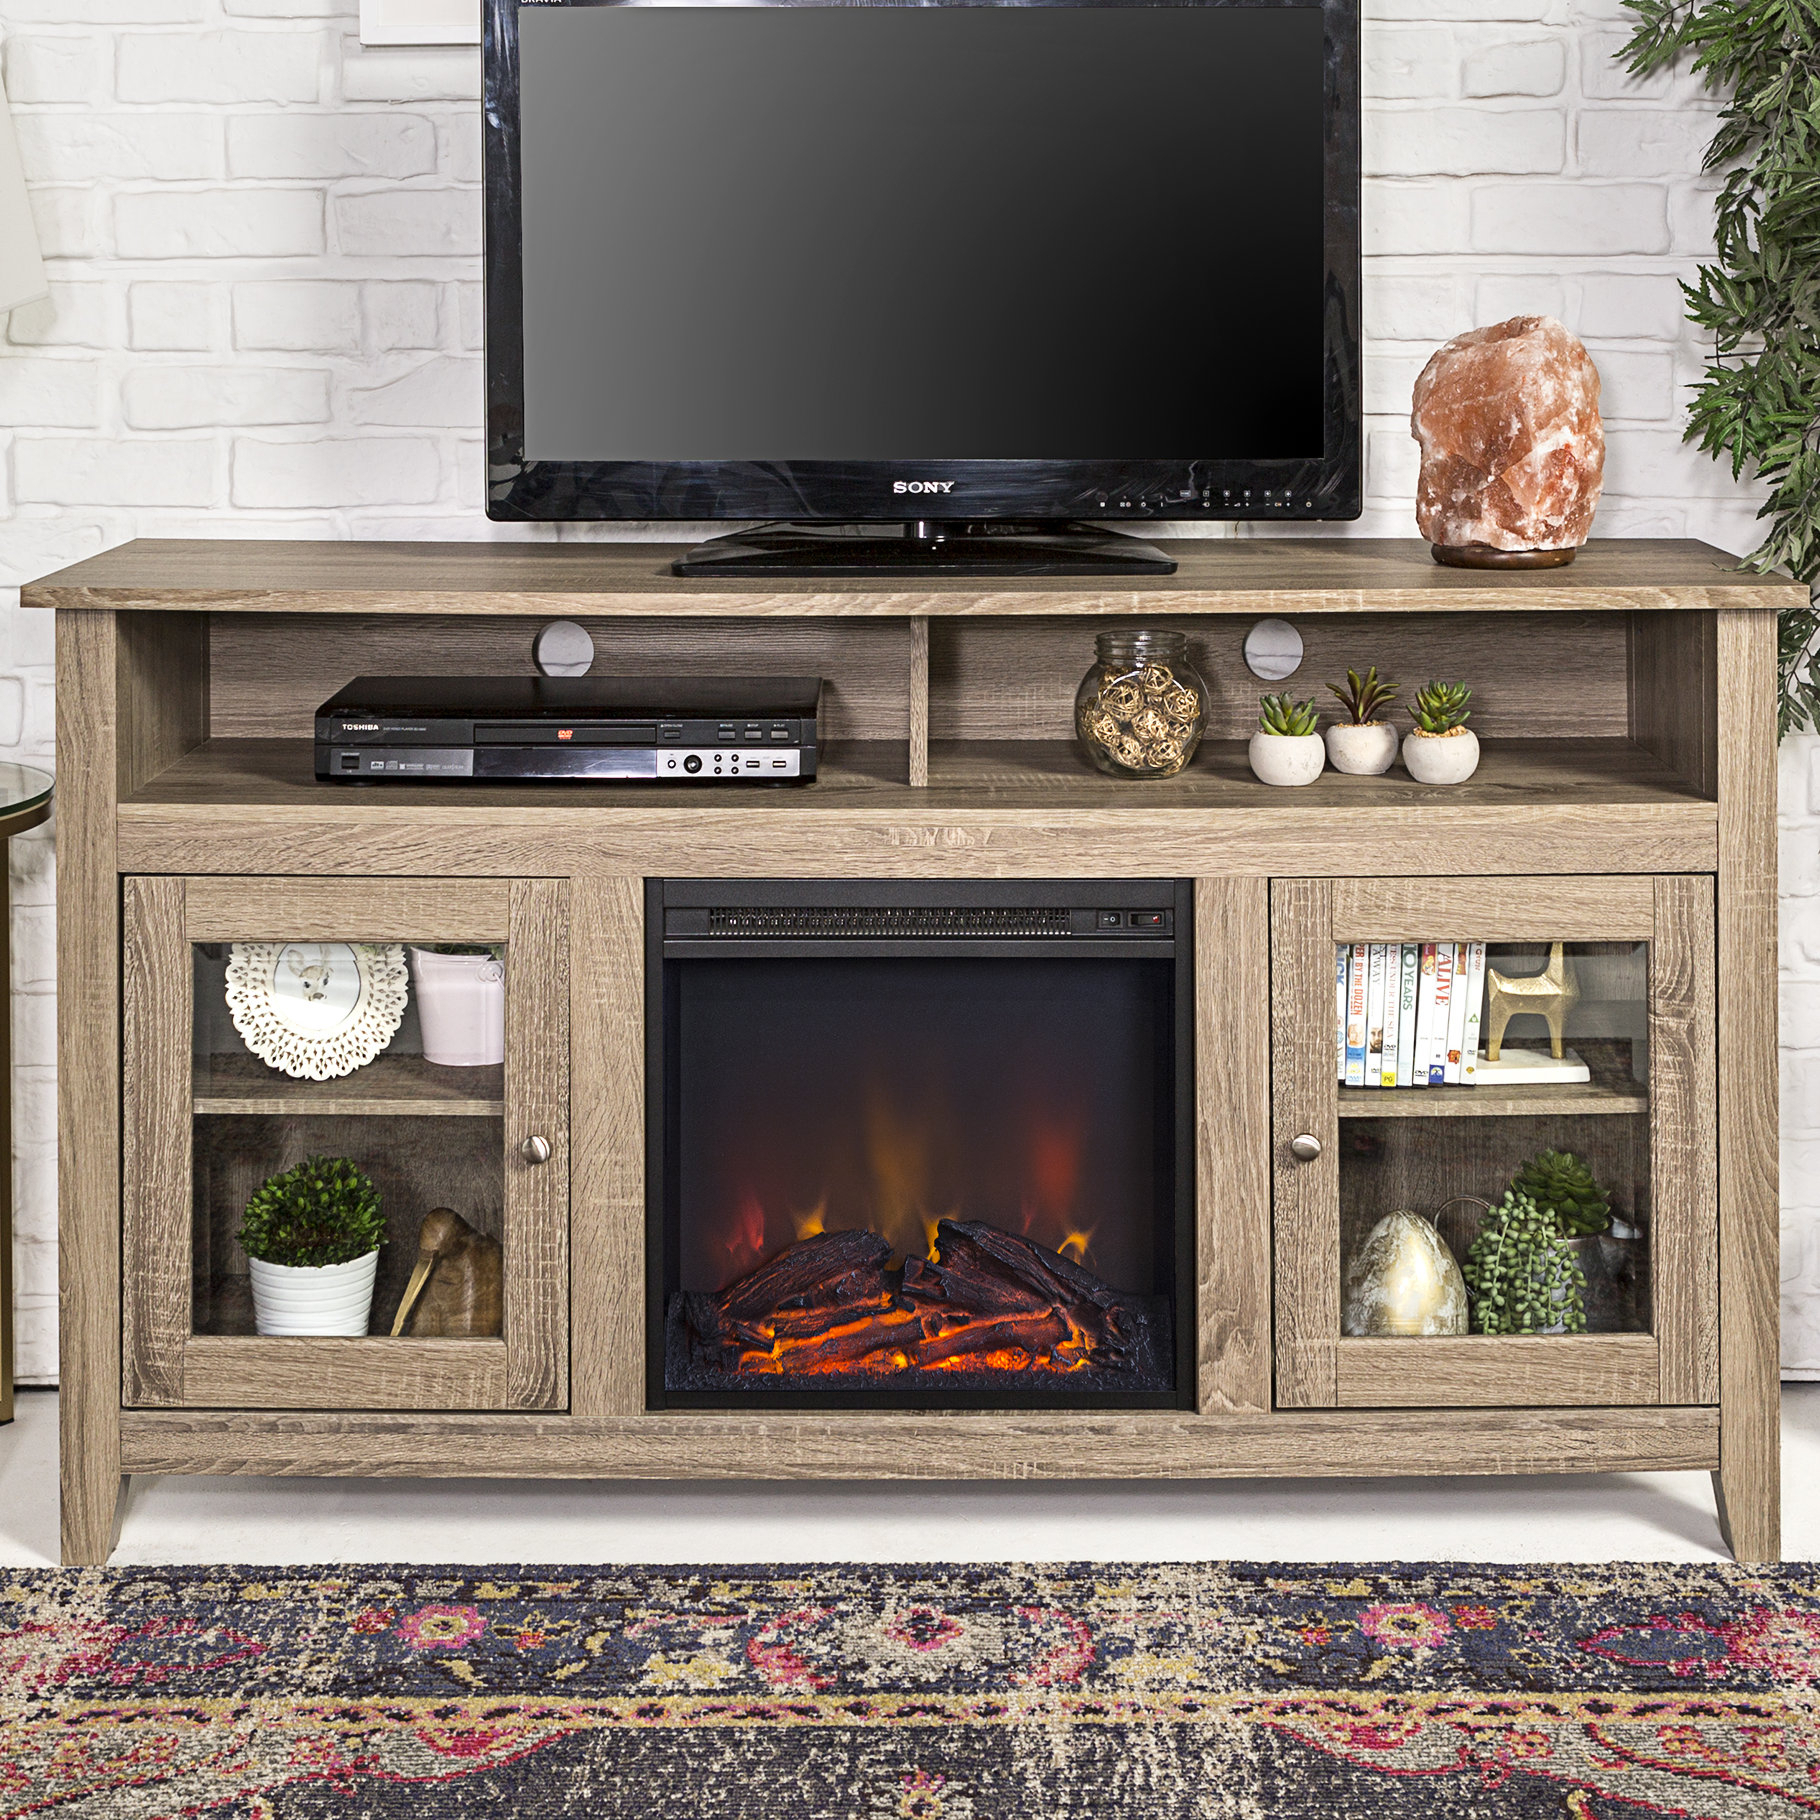 Fireplace Tv Stands & Entertainment Centers You'll Love | Wayfair (View 23 of 30)